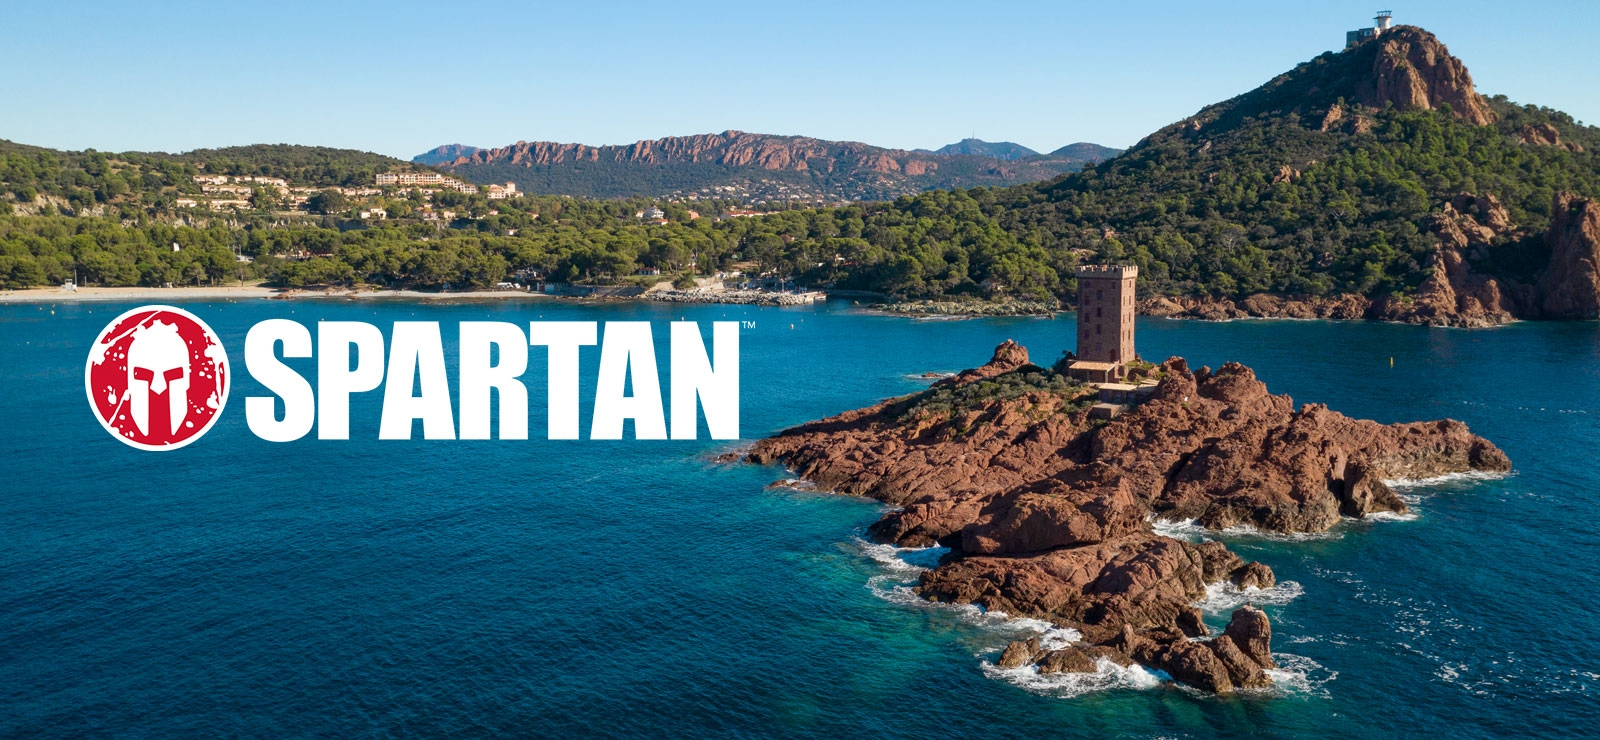 Spartan Race esterel octobre 2020